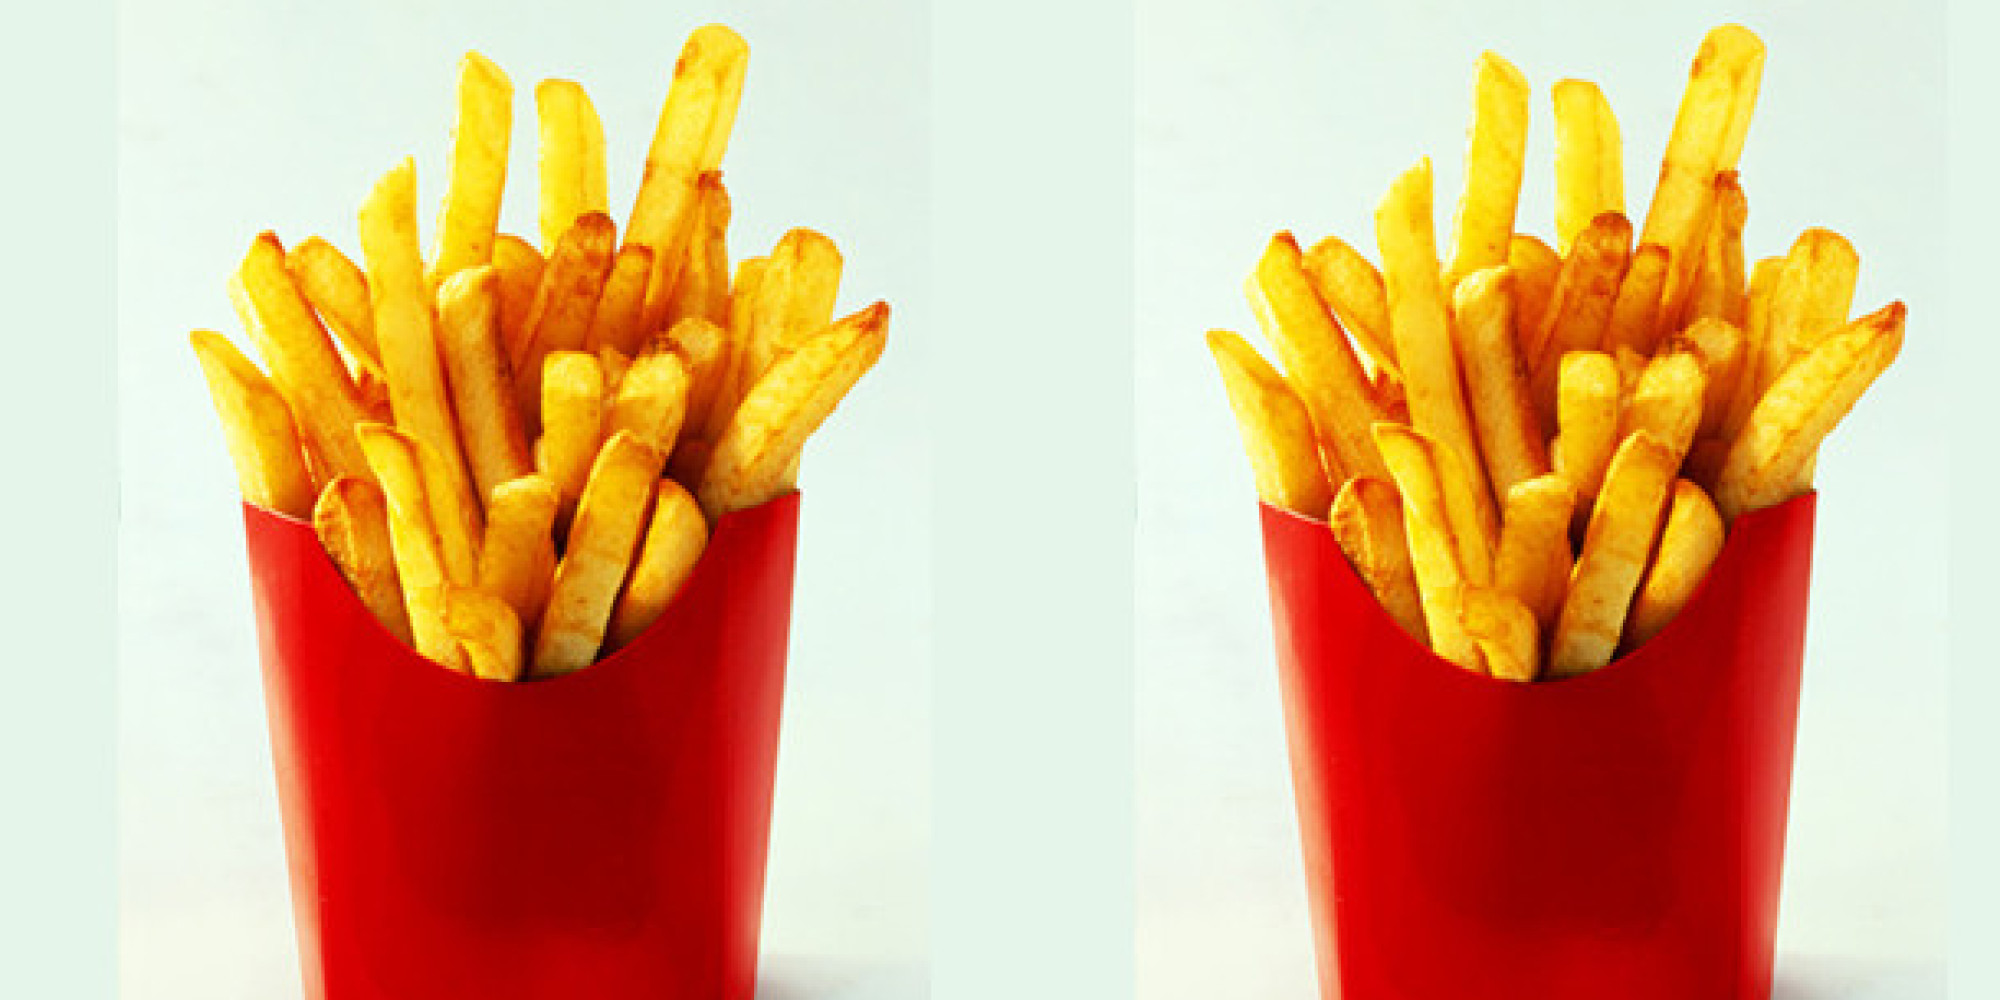 Where to find the. Chips clipart fry mcdonalds